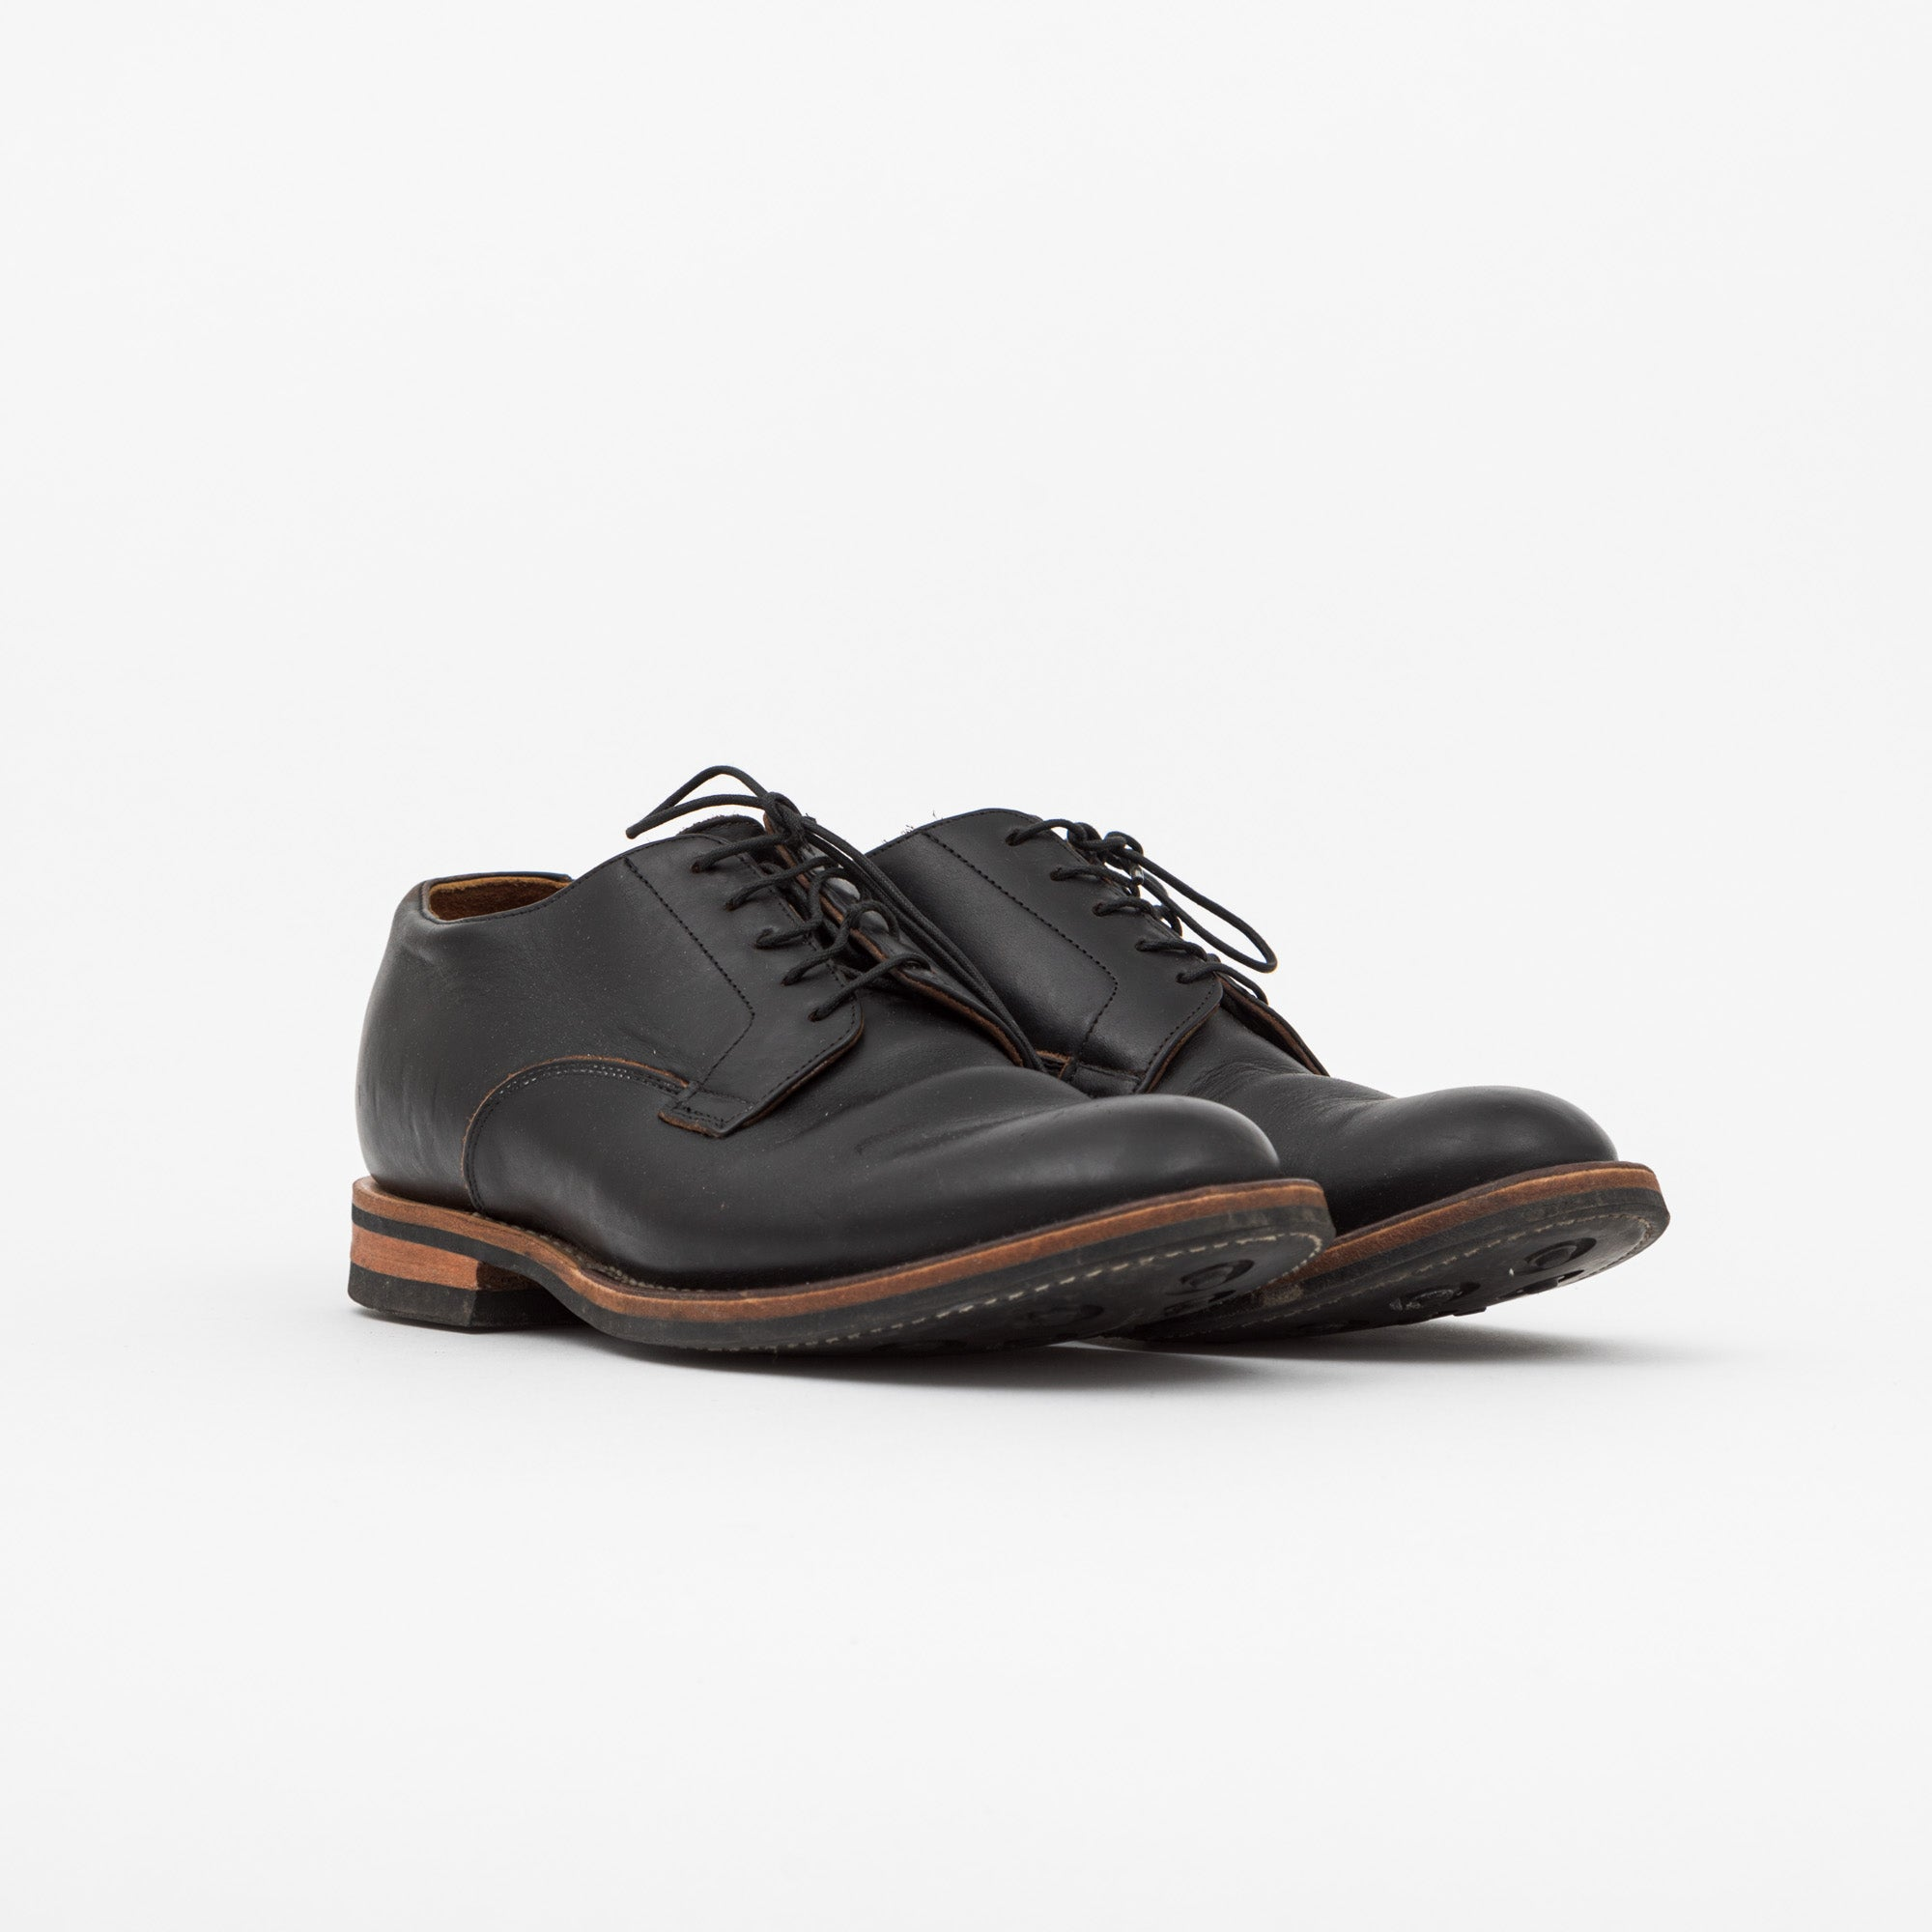 Viberg Boot Derby Shoes